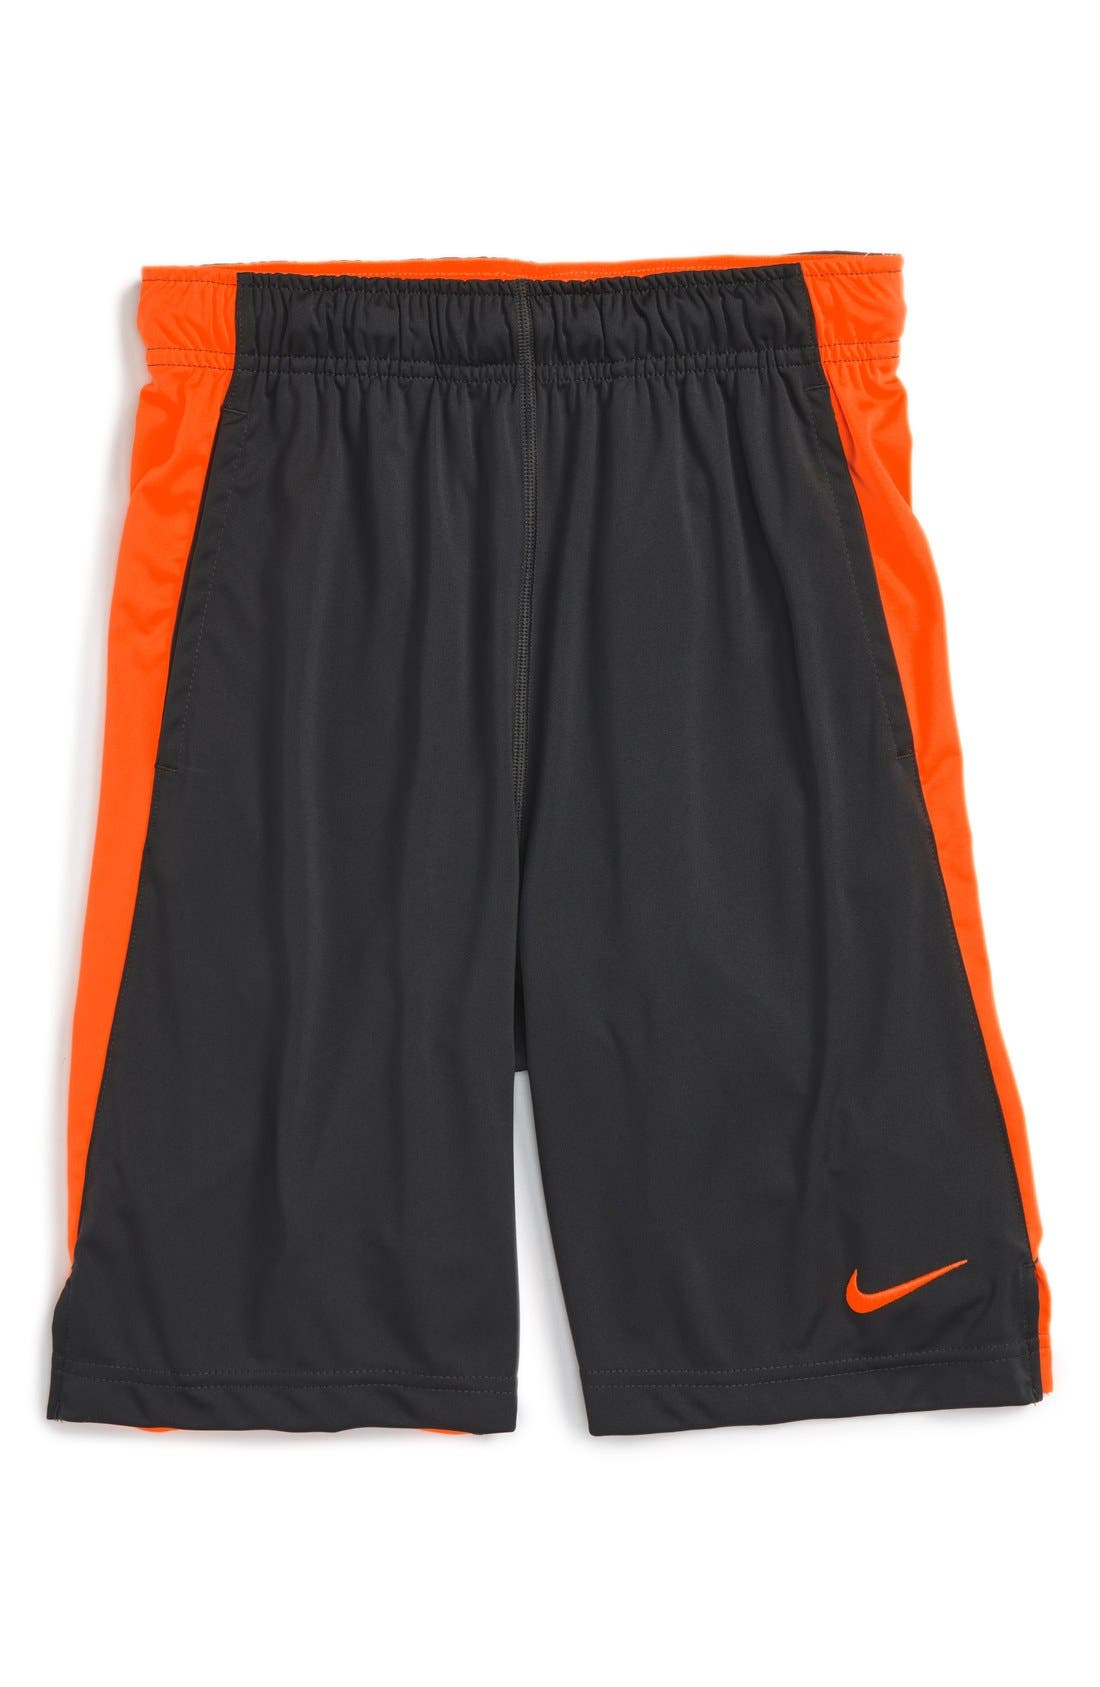 'Fly' Dri-FIT Training Shorts,                         Main,                         color, Anthracite/ Orange